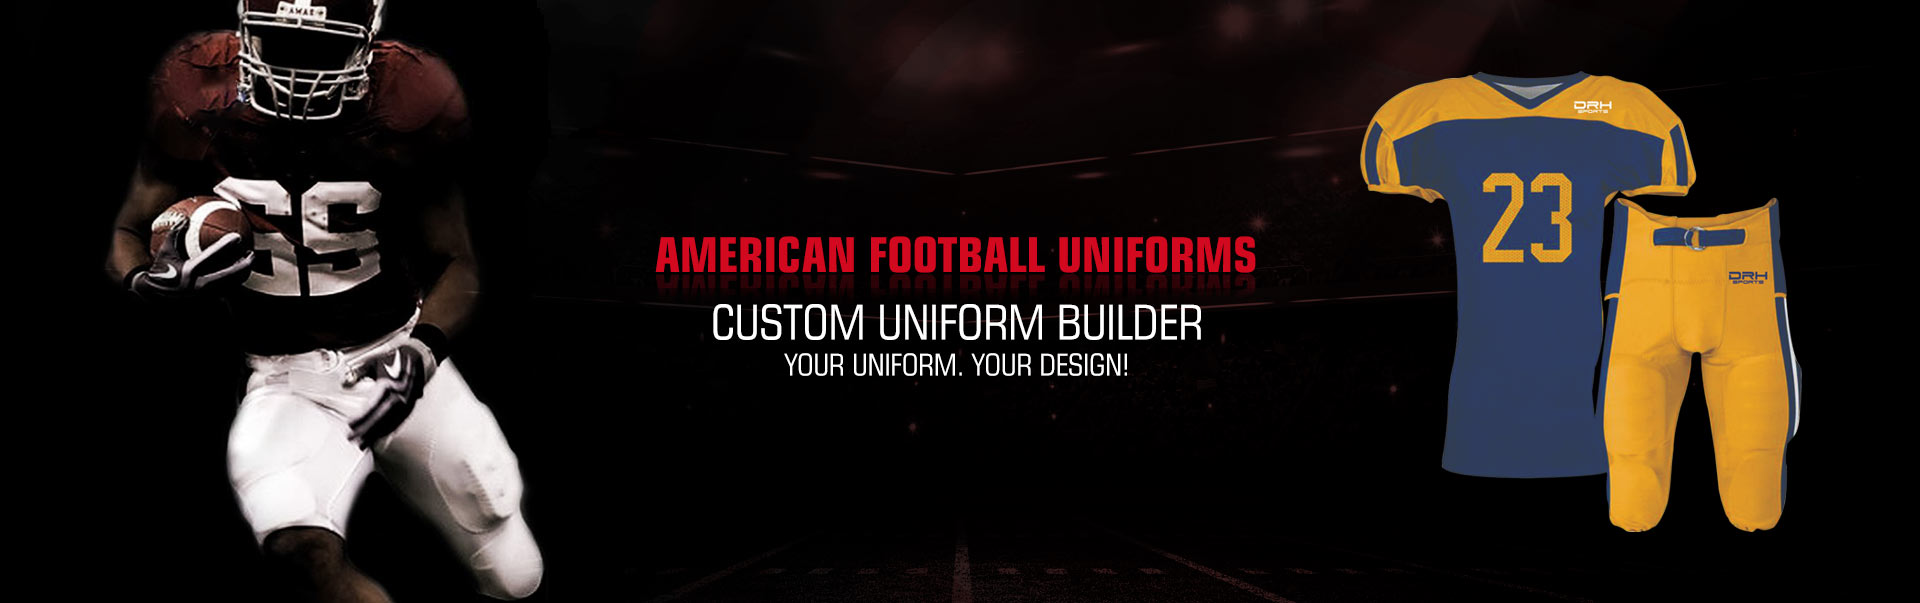 American Football Uniform Wholesaler, Suppliers in High Point